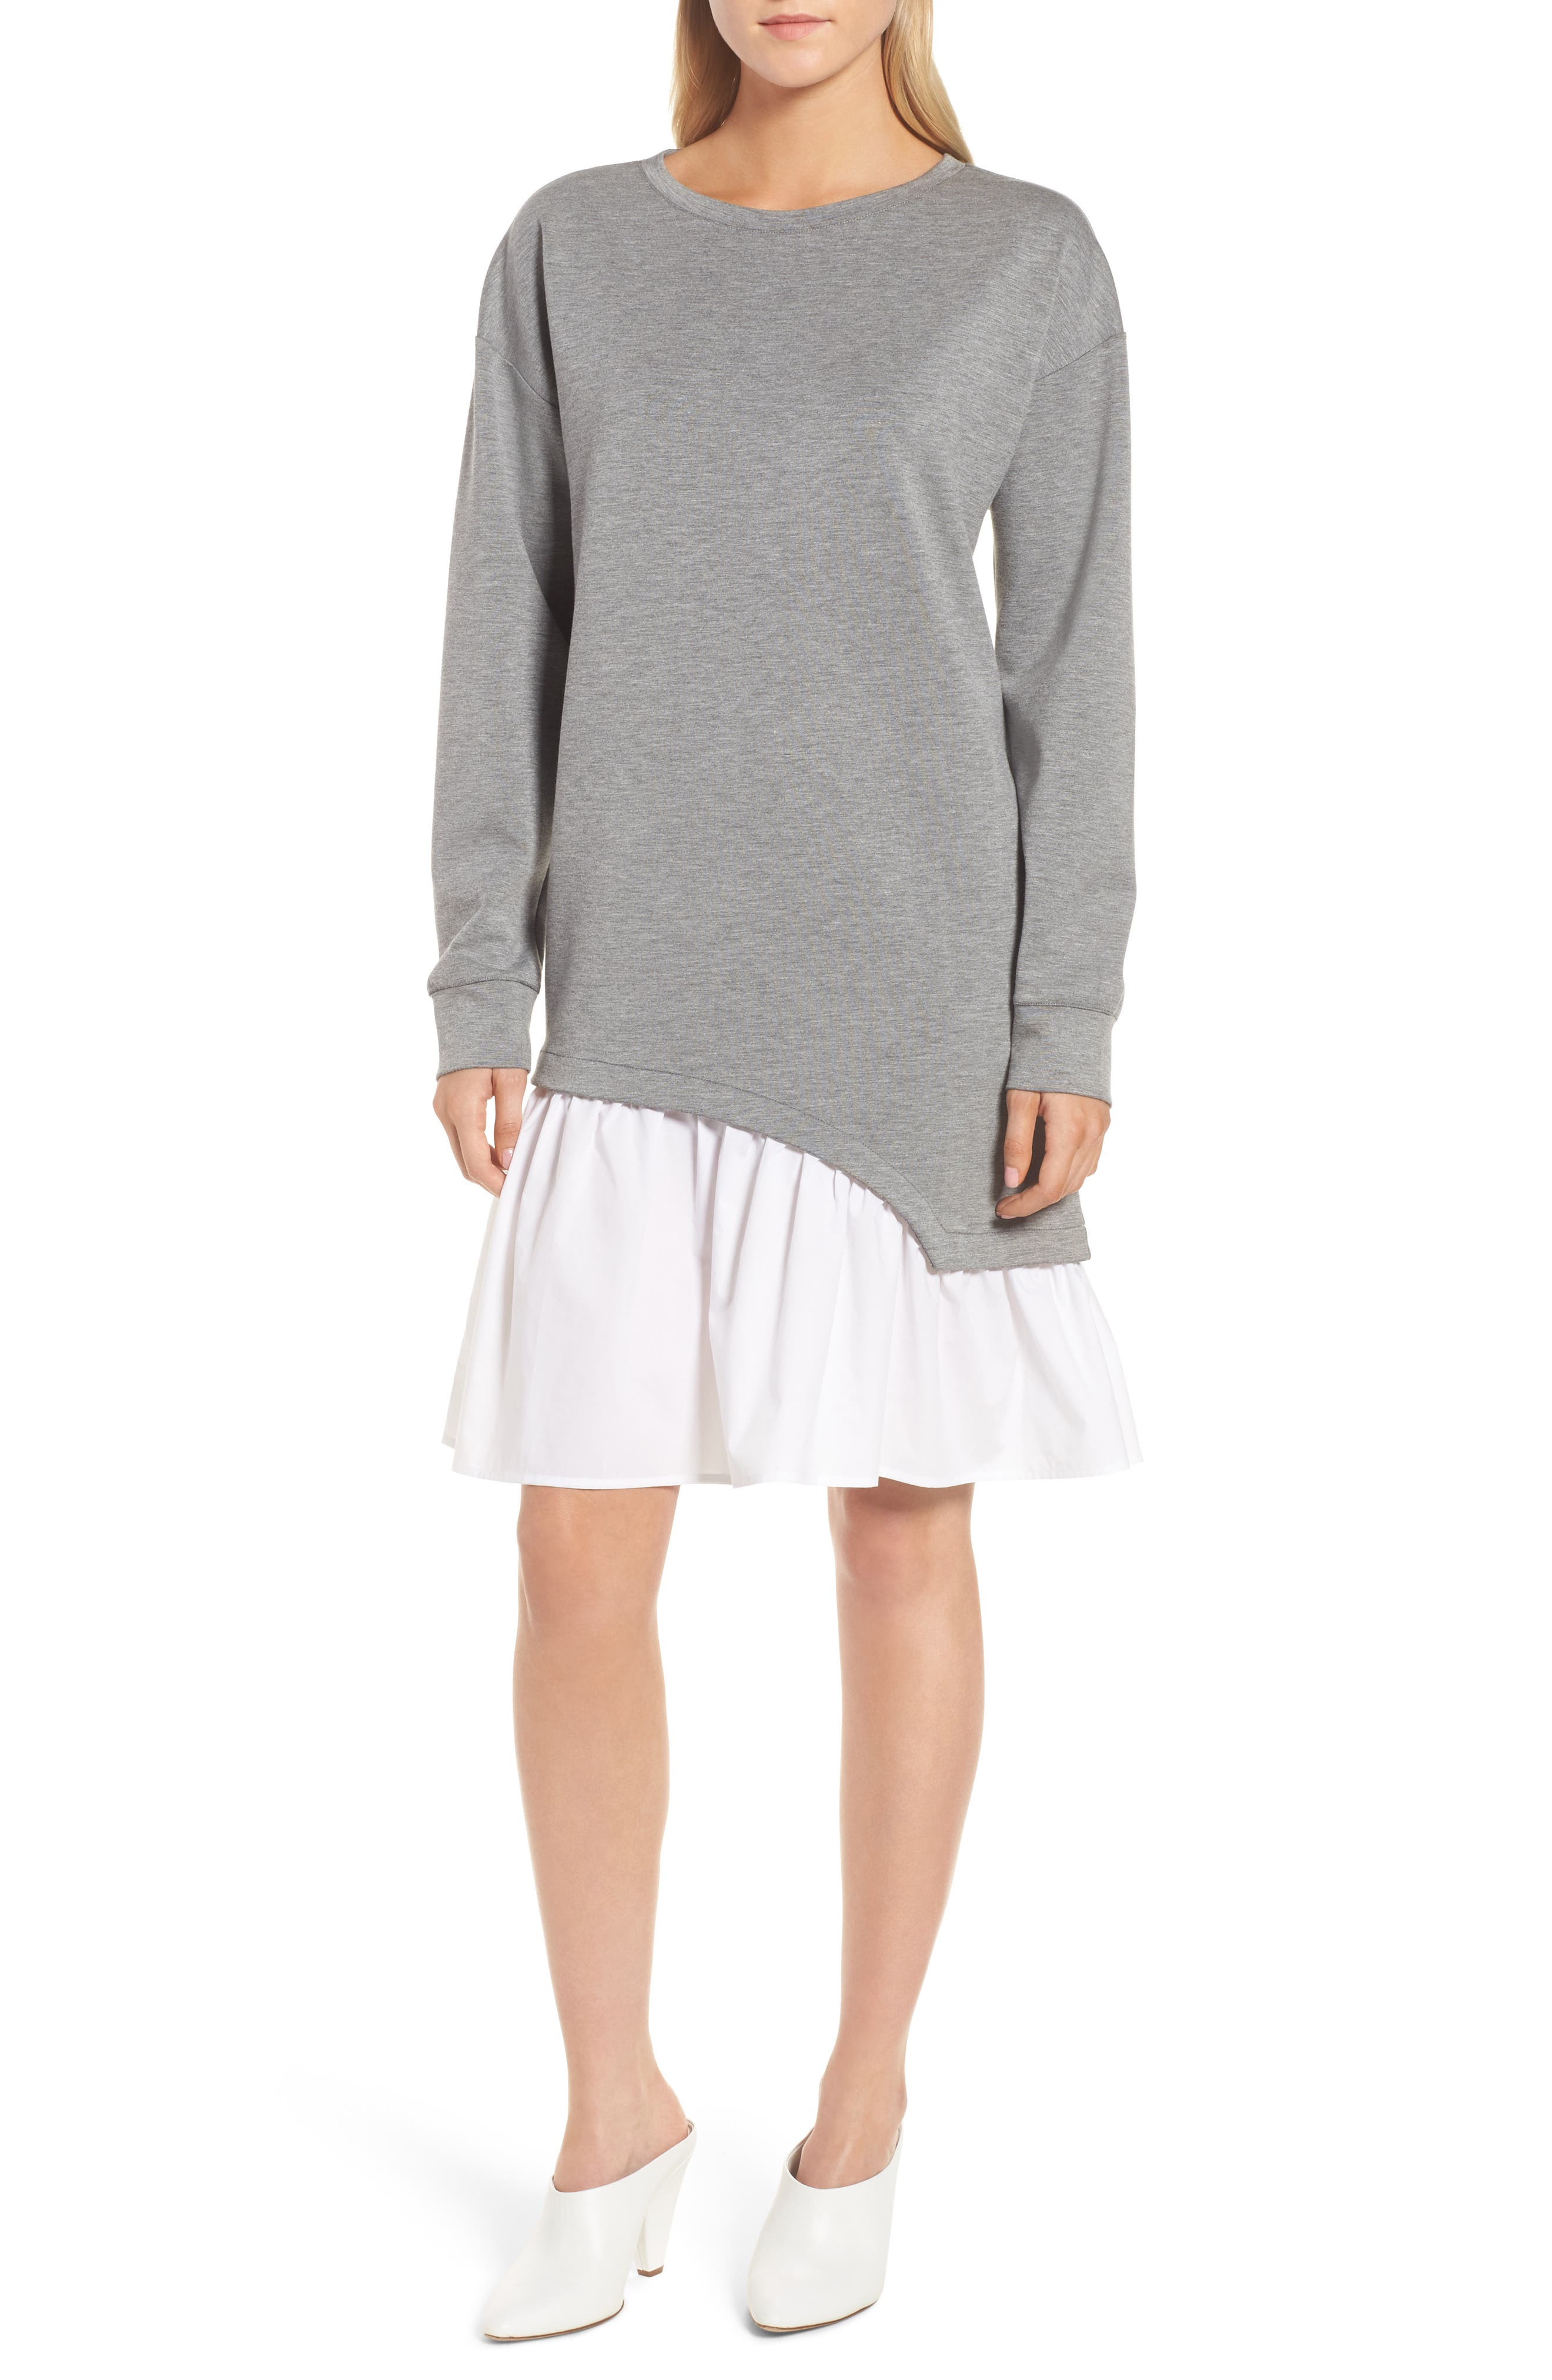 Mixed Media Sweatshirt Dress,                         Main,                         color, Grey Heather